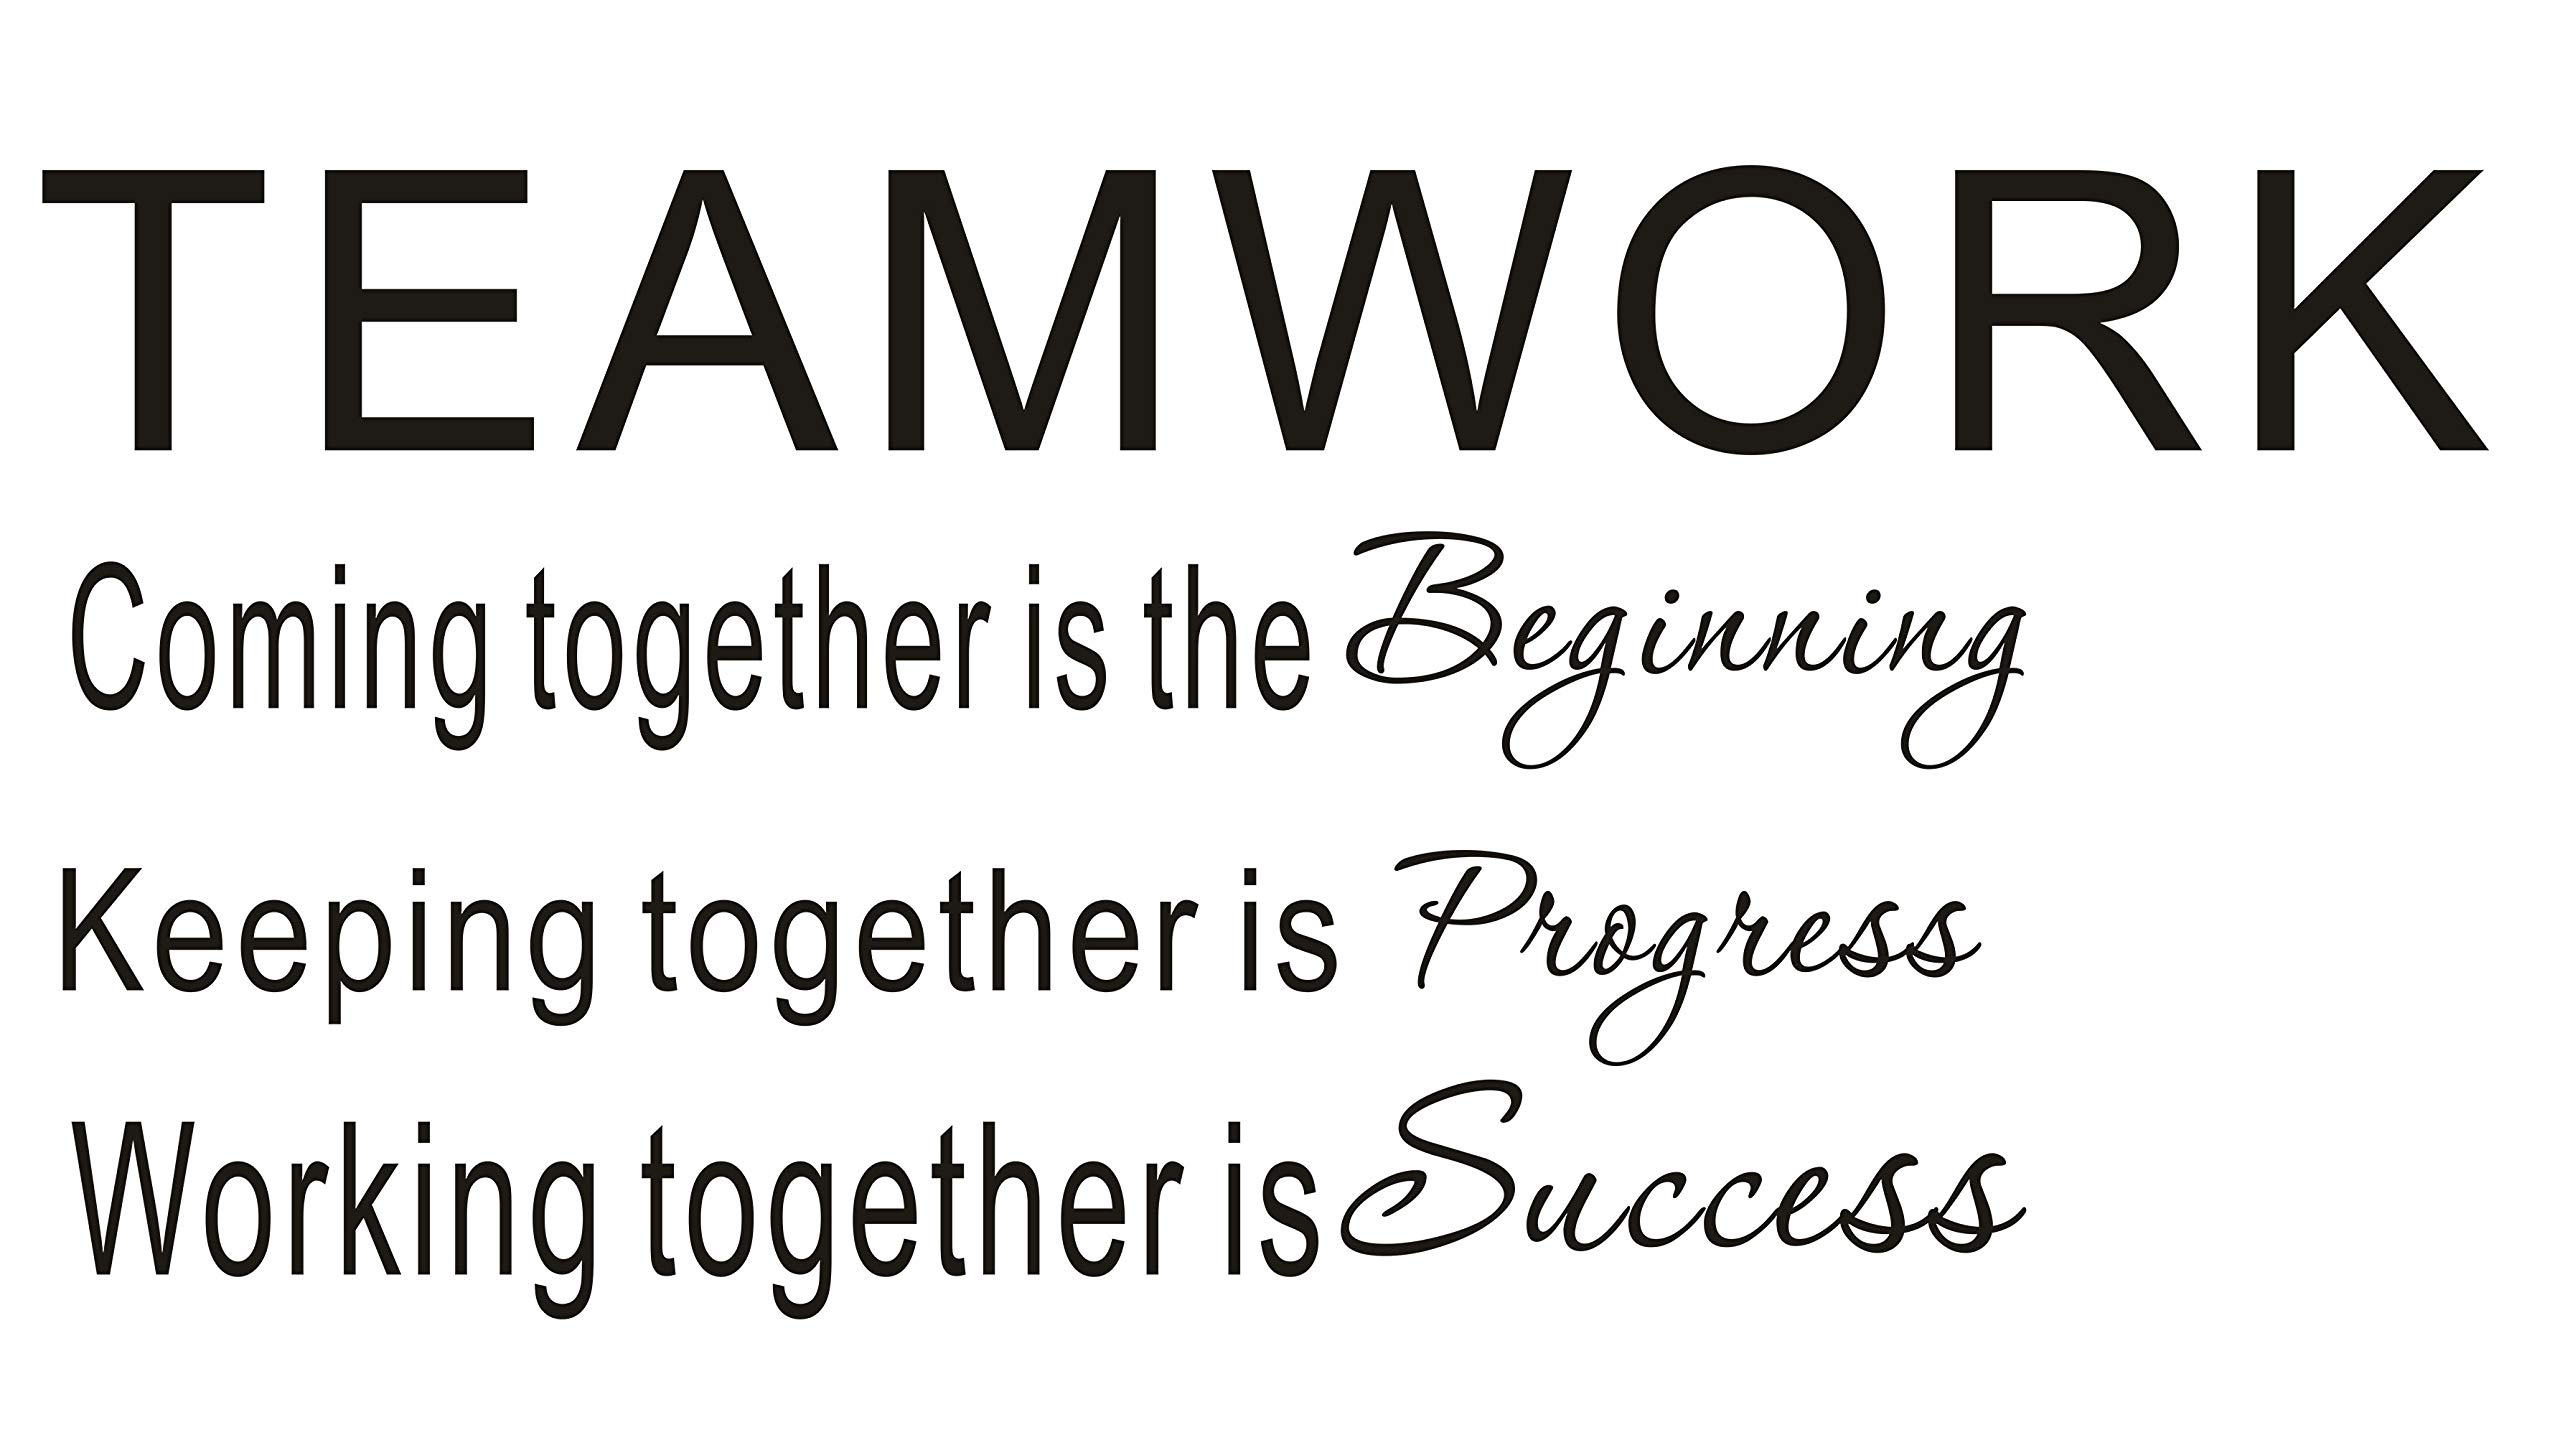 LUCKKYY Large Teamwork Motivation Inspirationa Creativity Office Wall Art Decals Quotes for Office Wall Office Family Office Inspirational Wall Decals Wall Sticker(Large-Teamwork) by LUCKKYY